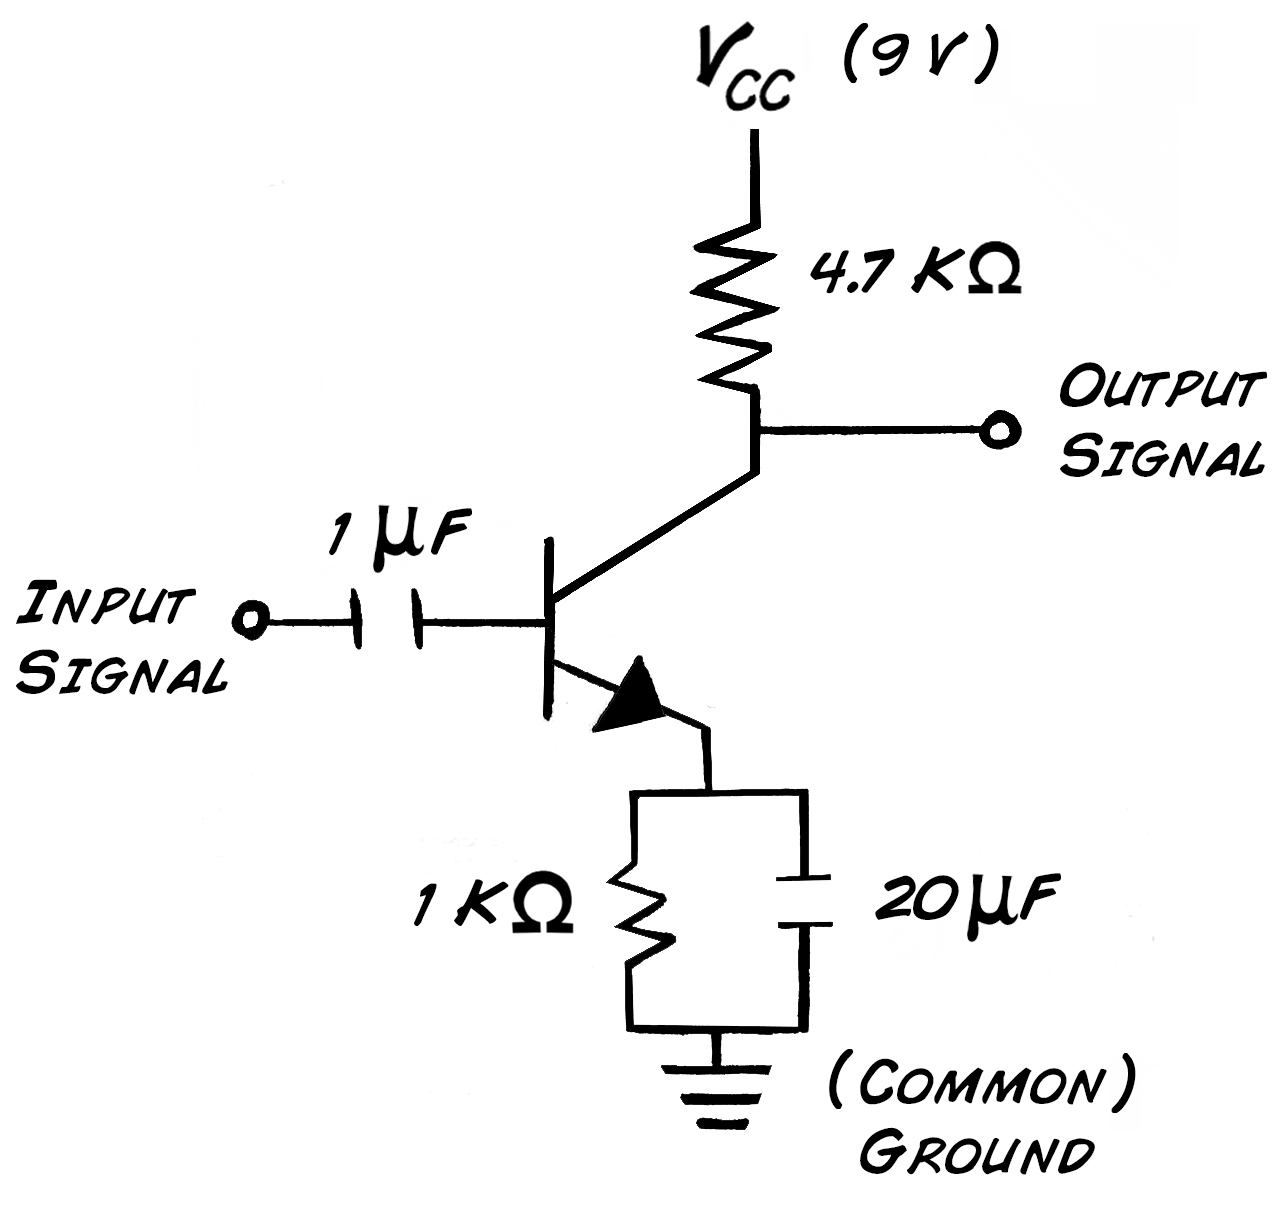 Experiment Transistor Circuit Design Voltage Divider Network Has The Ability To Generate Different Voltages